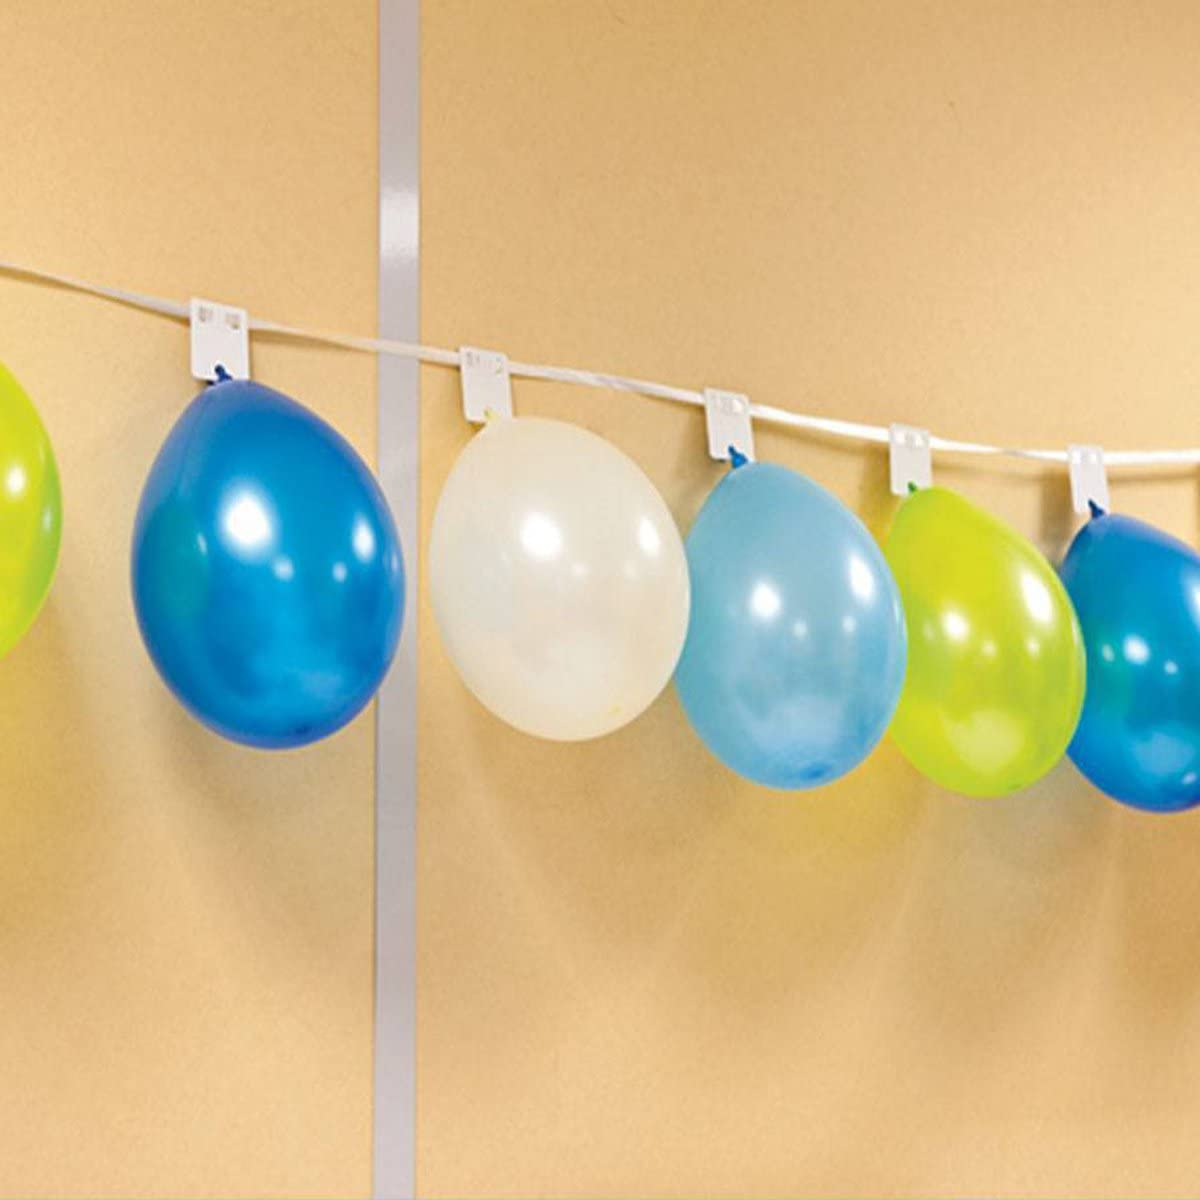 8 M Visiodirect Guirlande Support Coloris Blanc pour 24 Ballons